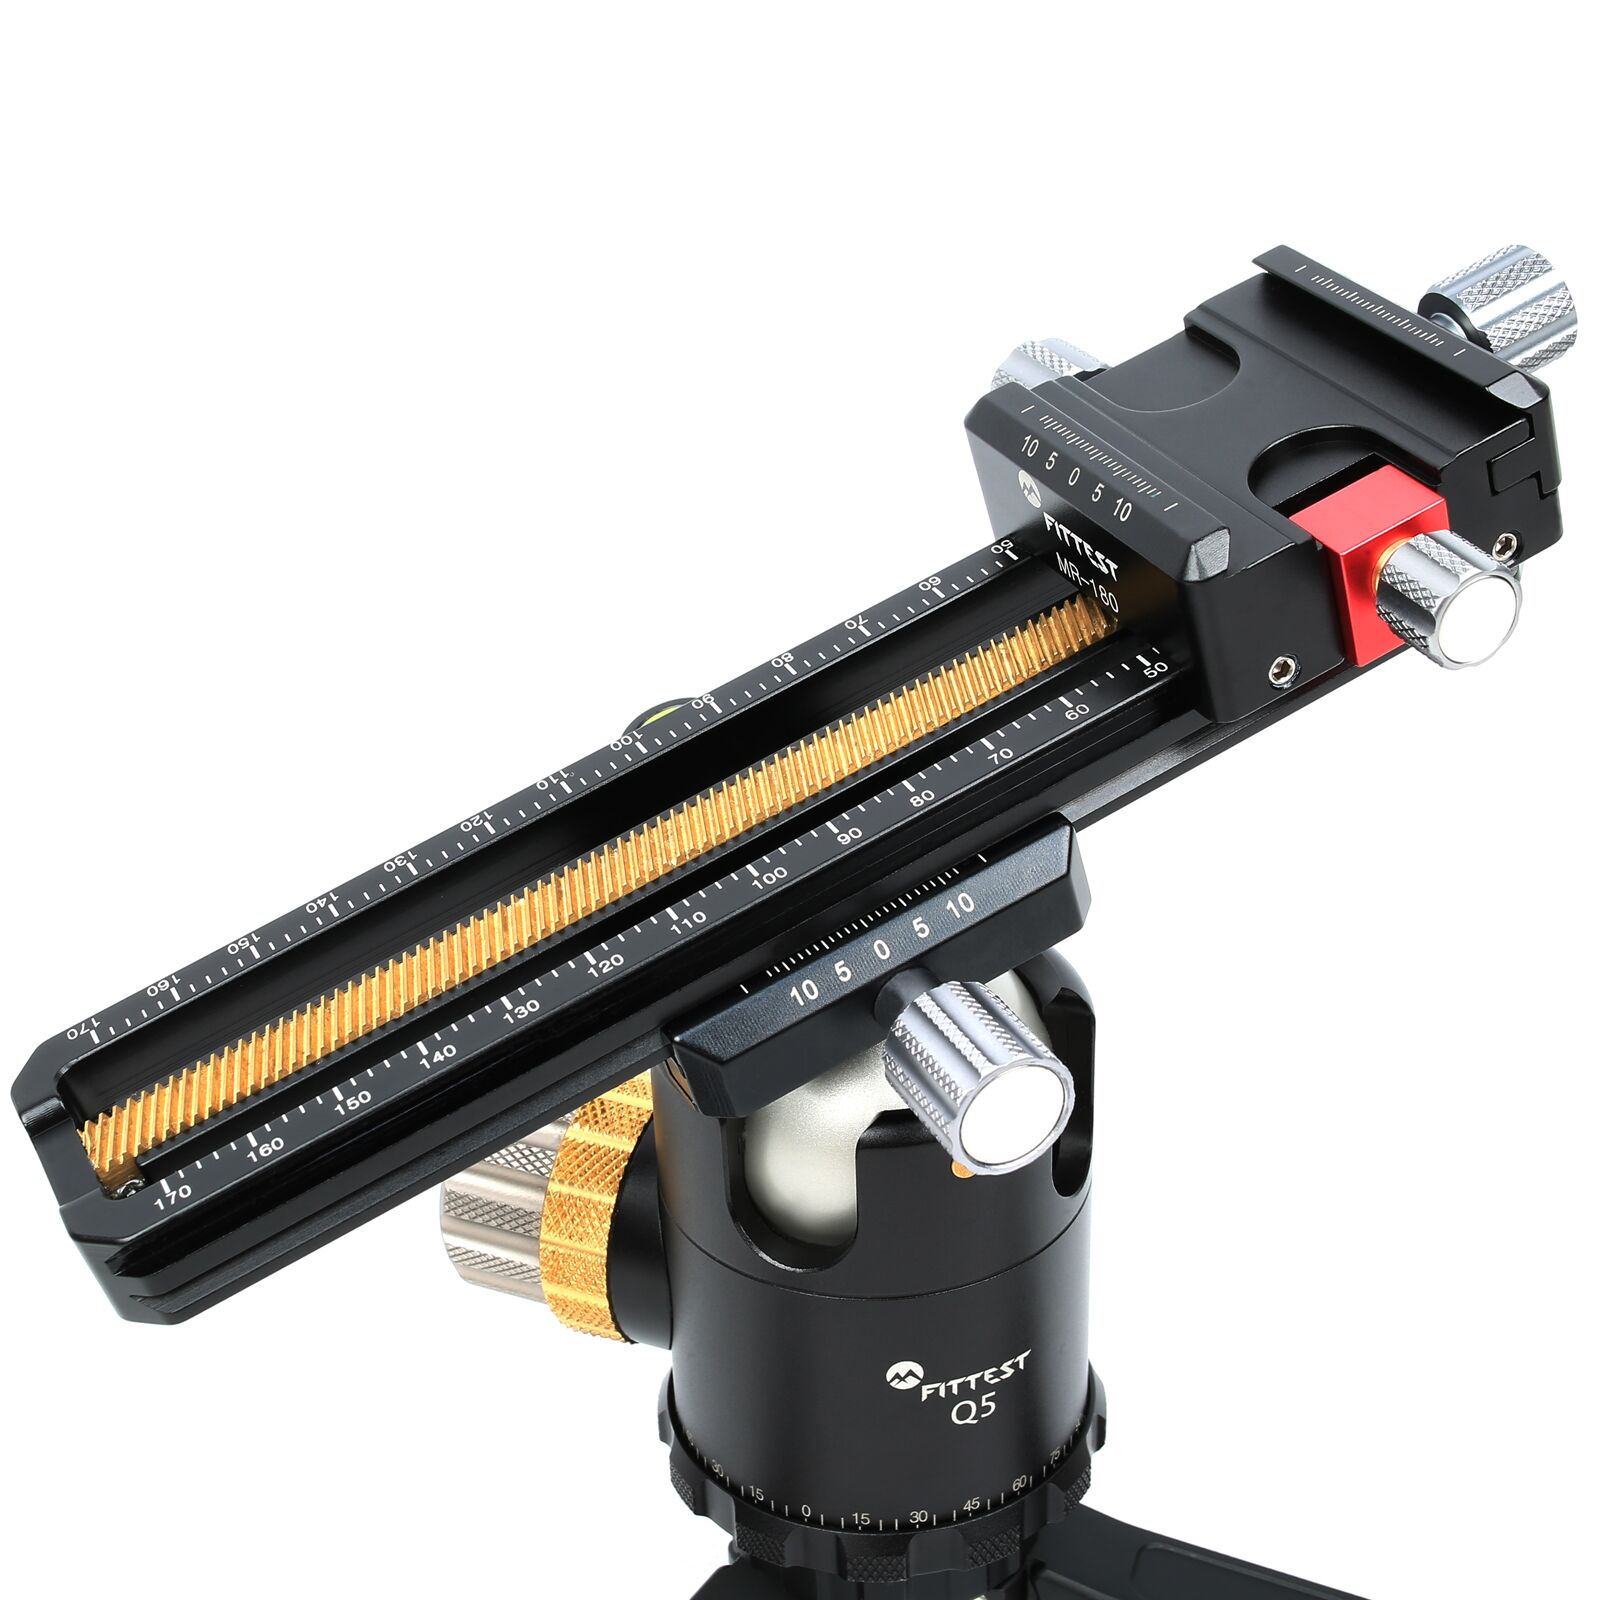 FITTEST MR-180 180mm Macro Focusing Rail Slider Close-up Shooting Head With Arca-Swiss Fit Clamp Quick Release Plate for Tripod enlarge